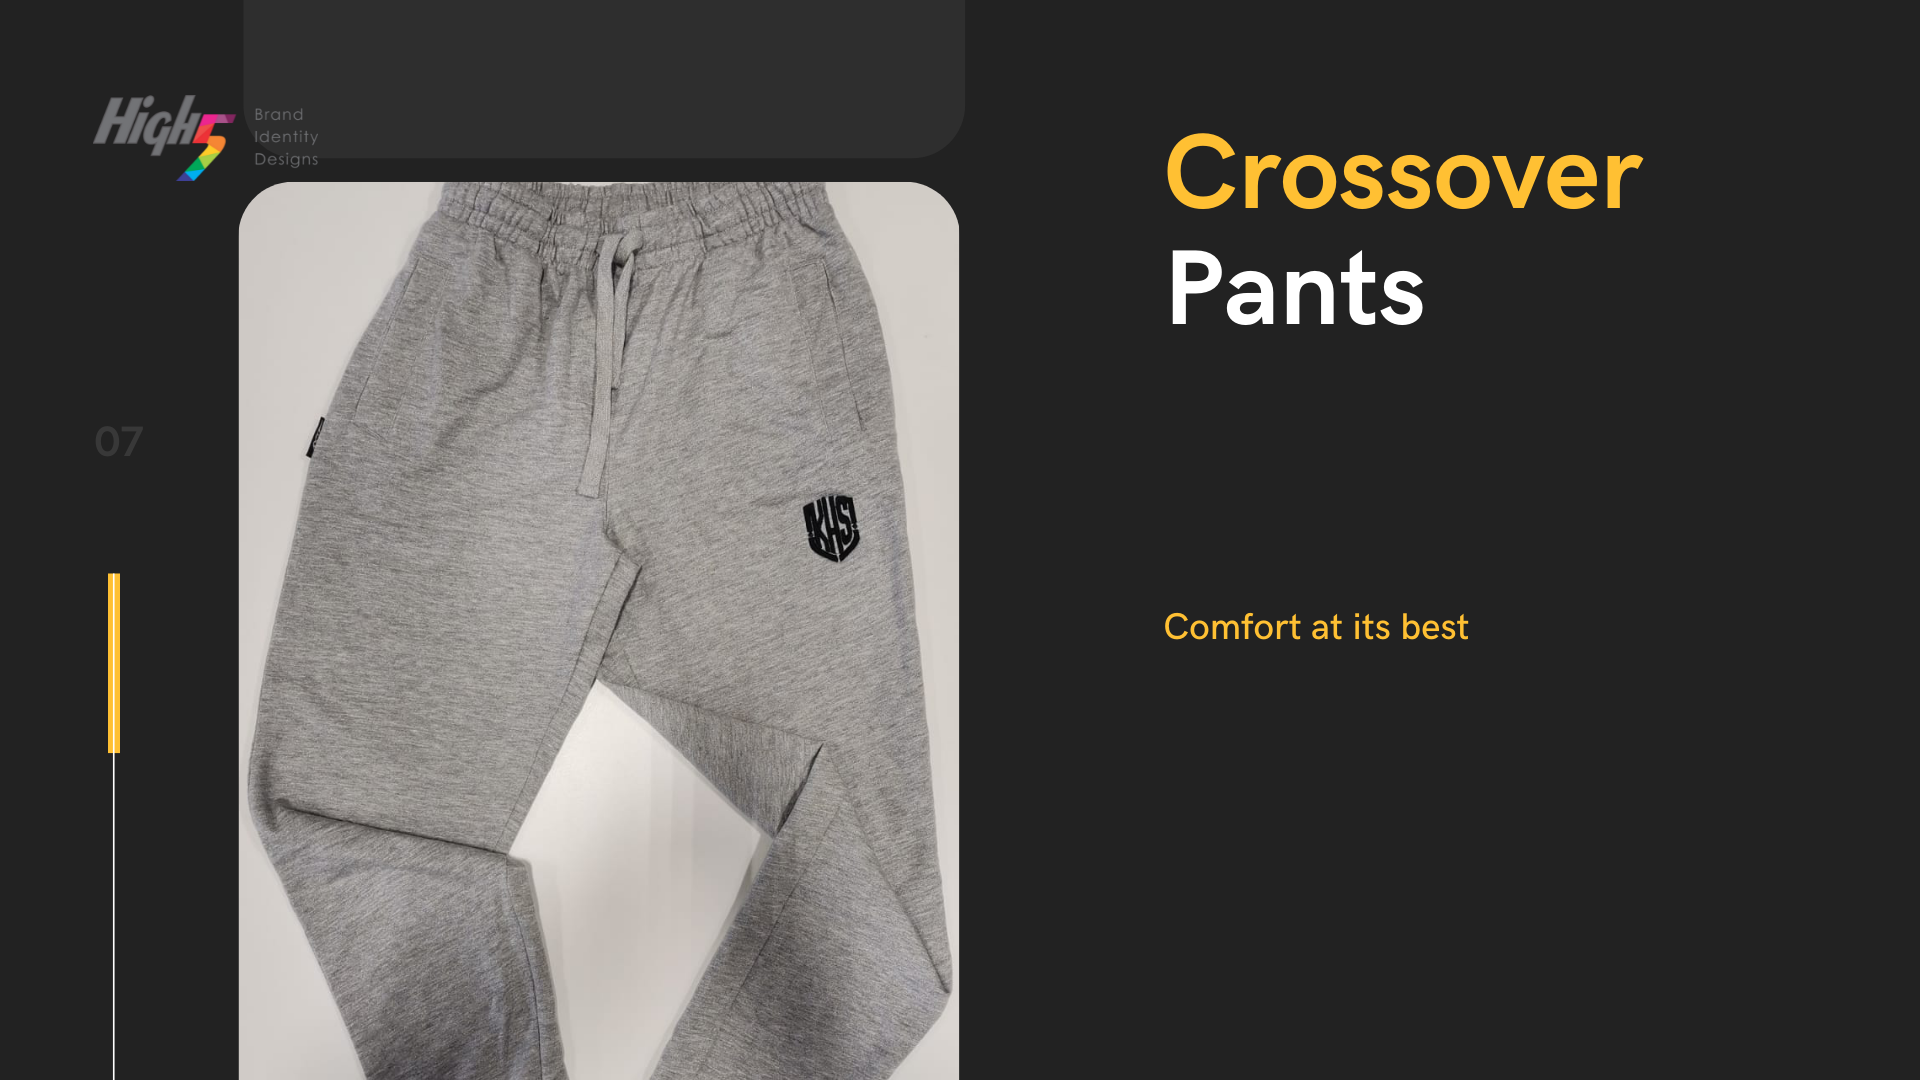 CROSSOVER PANTS